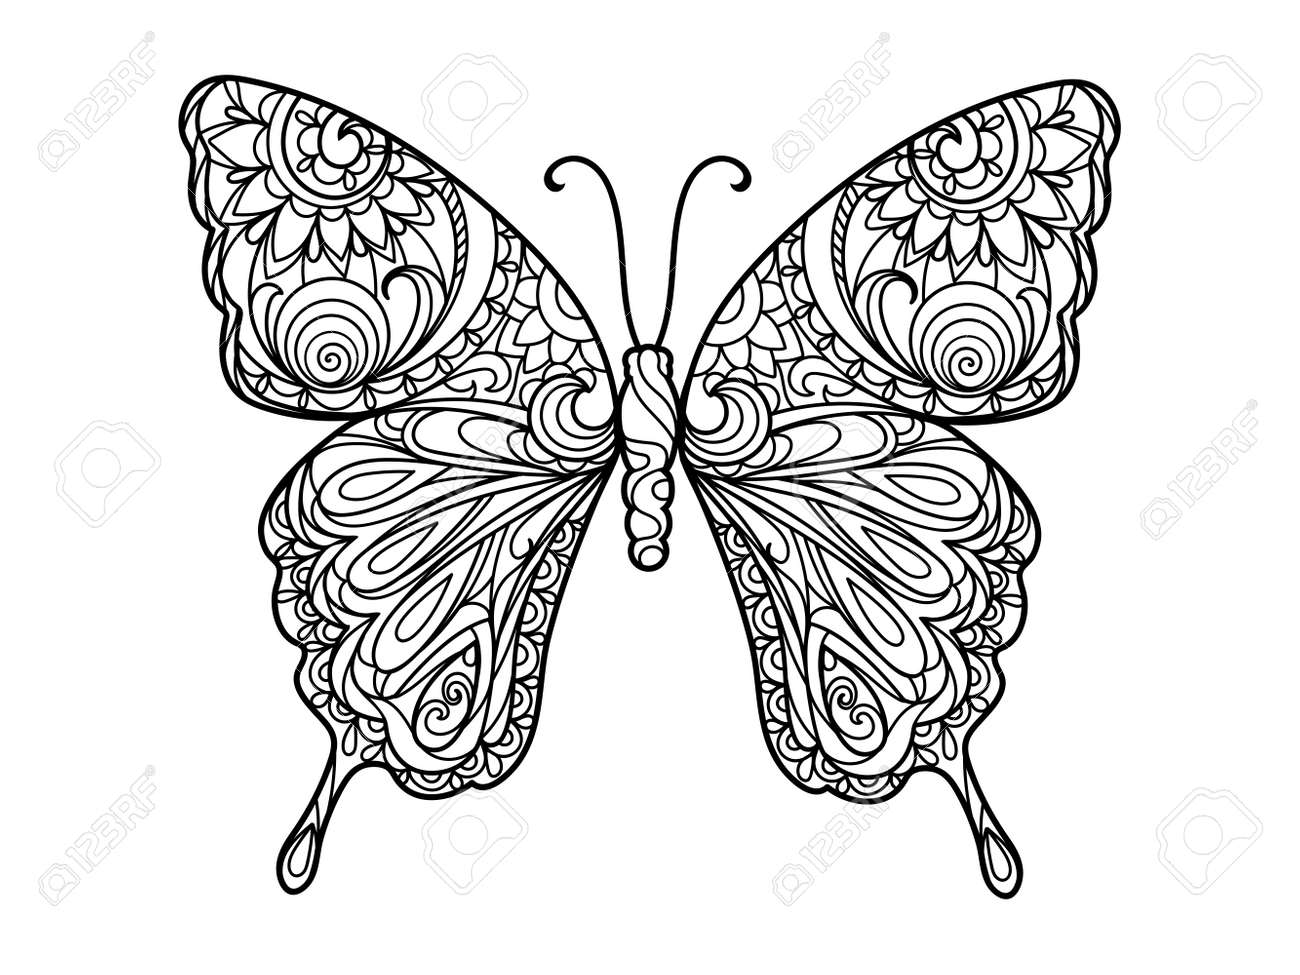 Colourtation anti stress colouring book for adults volume 1 - An Anti Stress Colouring In Books Anti Stress Colouring Book For Adults Butterfly Coloring Book